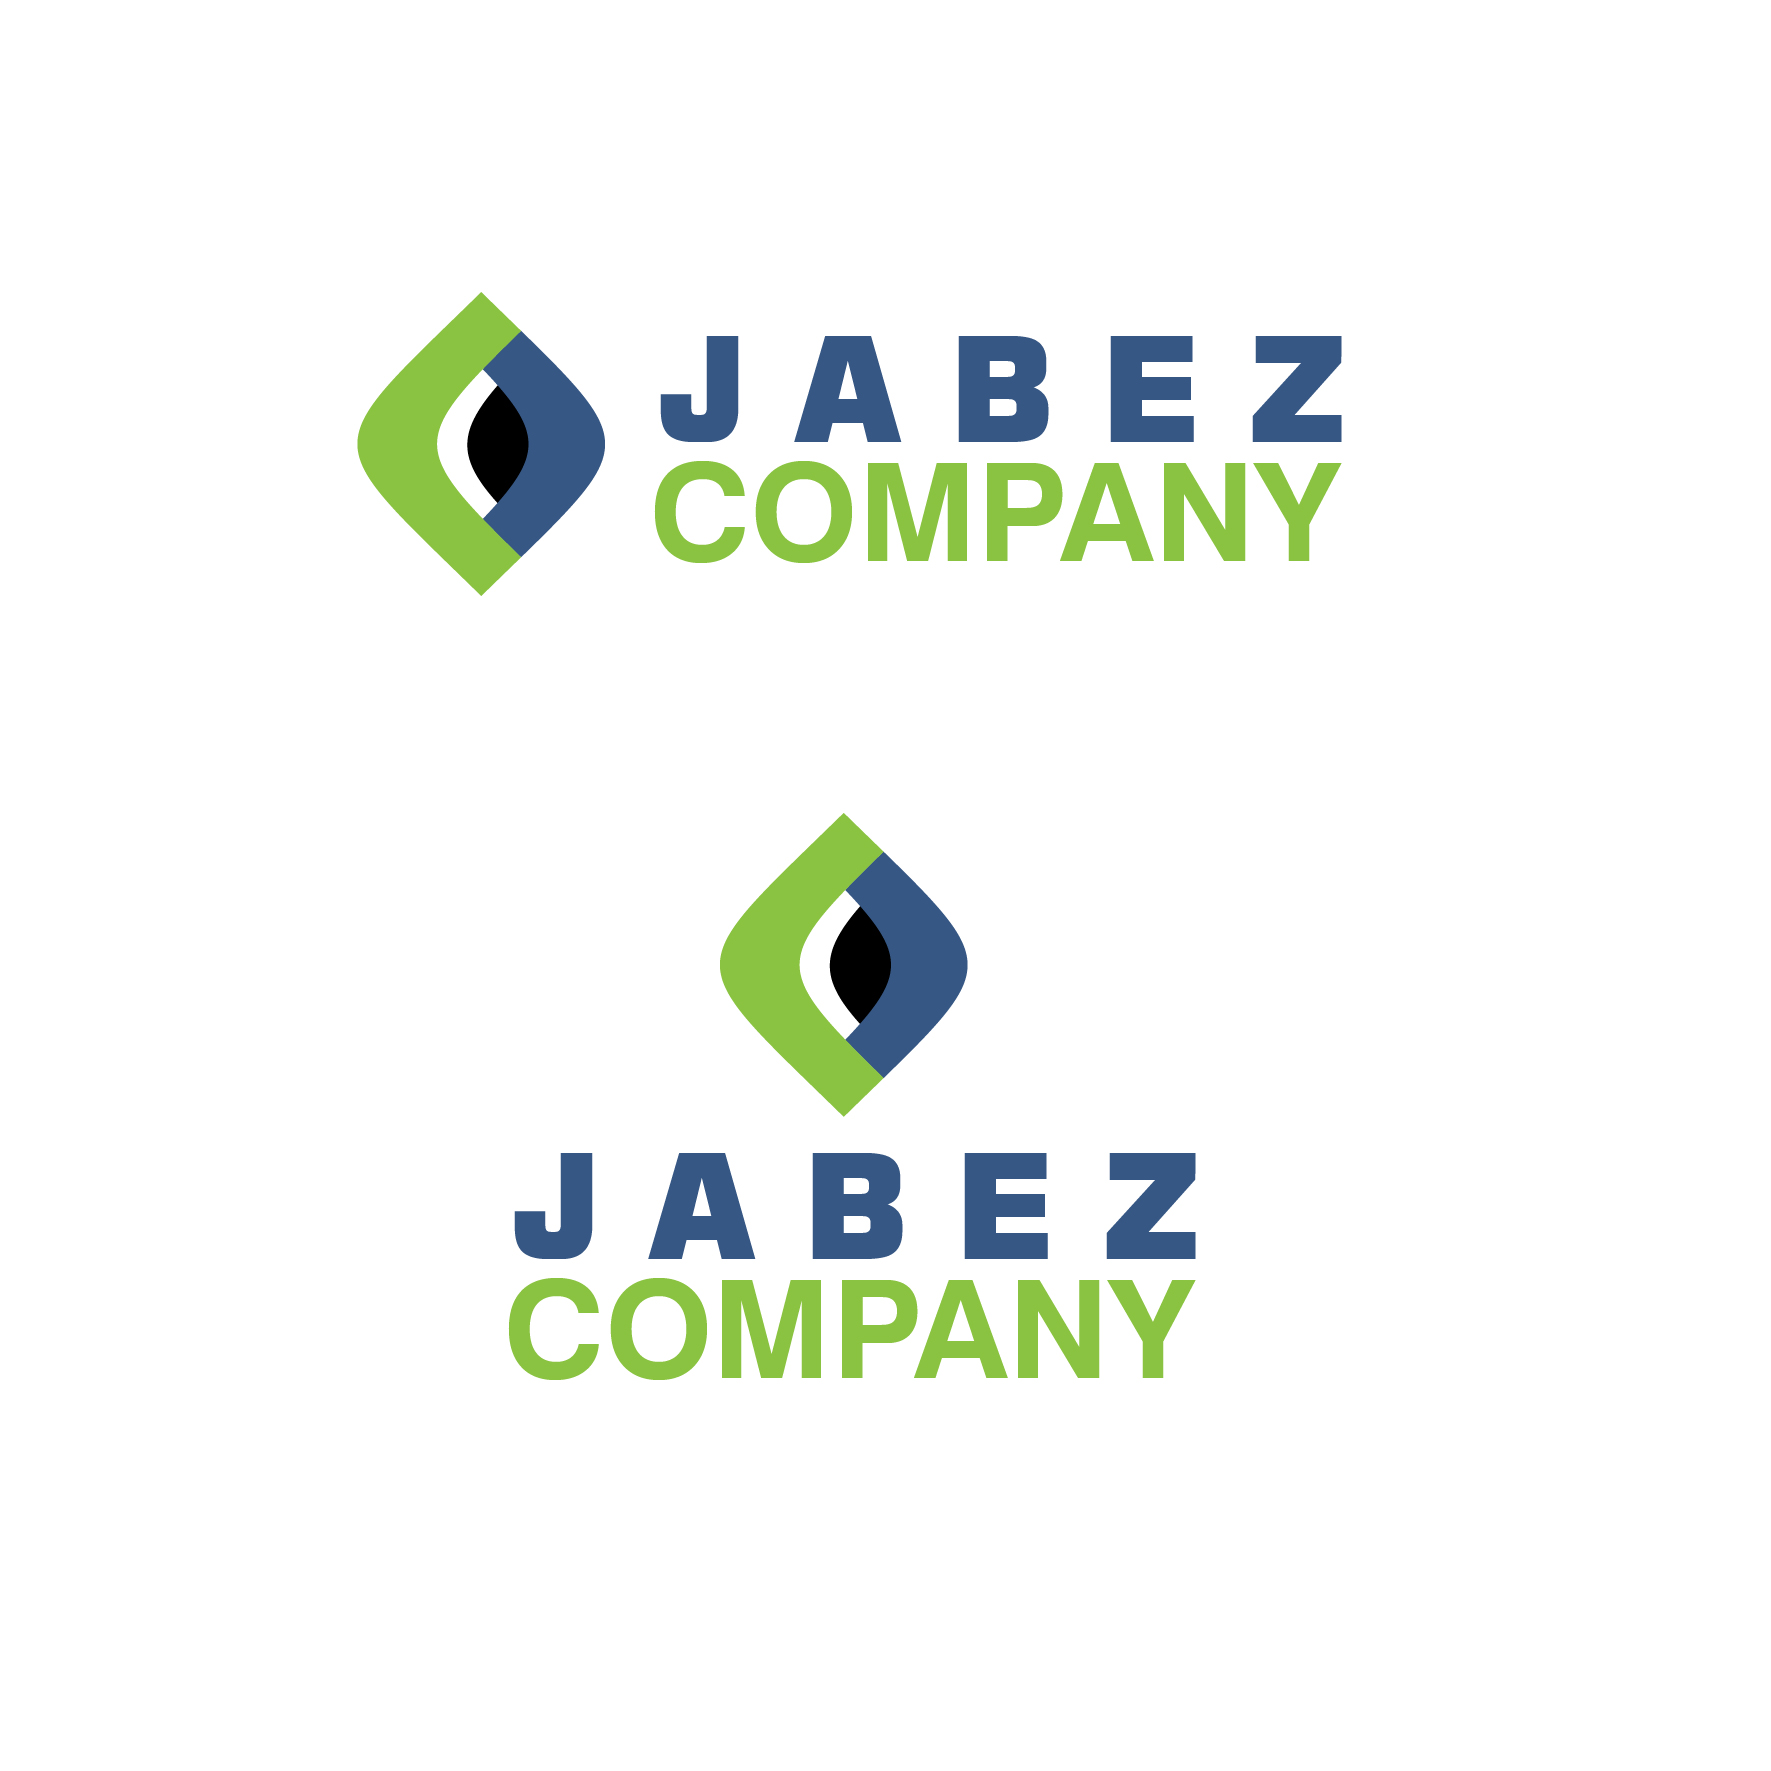 Logo Design by 3draw - Entry No. 36 in the Logo Design Contest New Logo Design for Jabez Compnay, LLC.